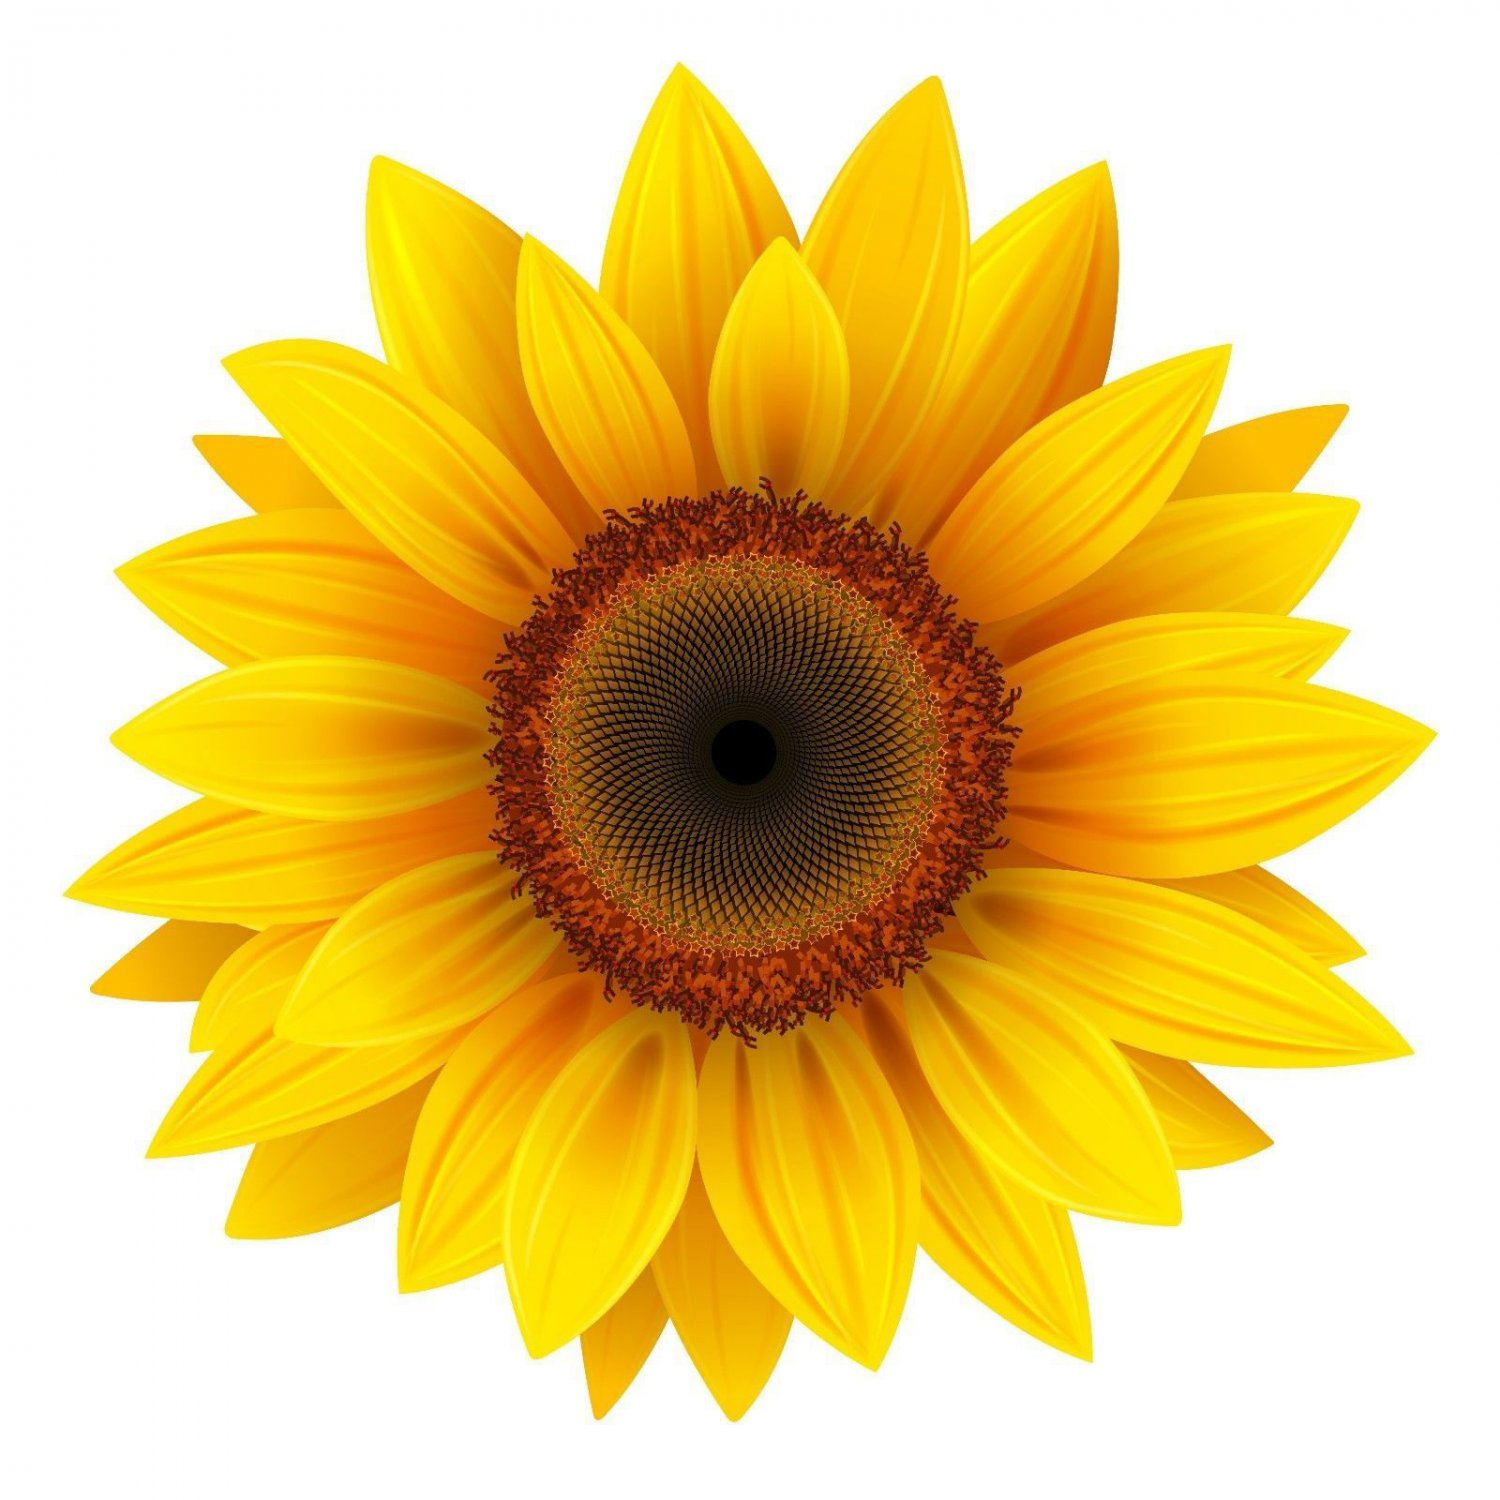 4 Inch Yellow Sunflower Vinyl Decal Stickers Yeti Hardhat Cellphone Tablet Laptop